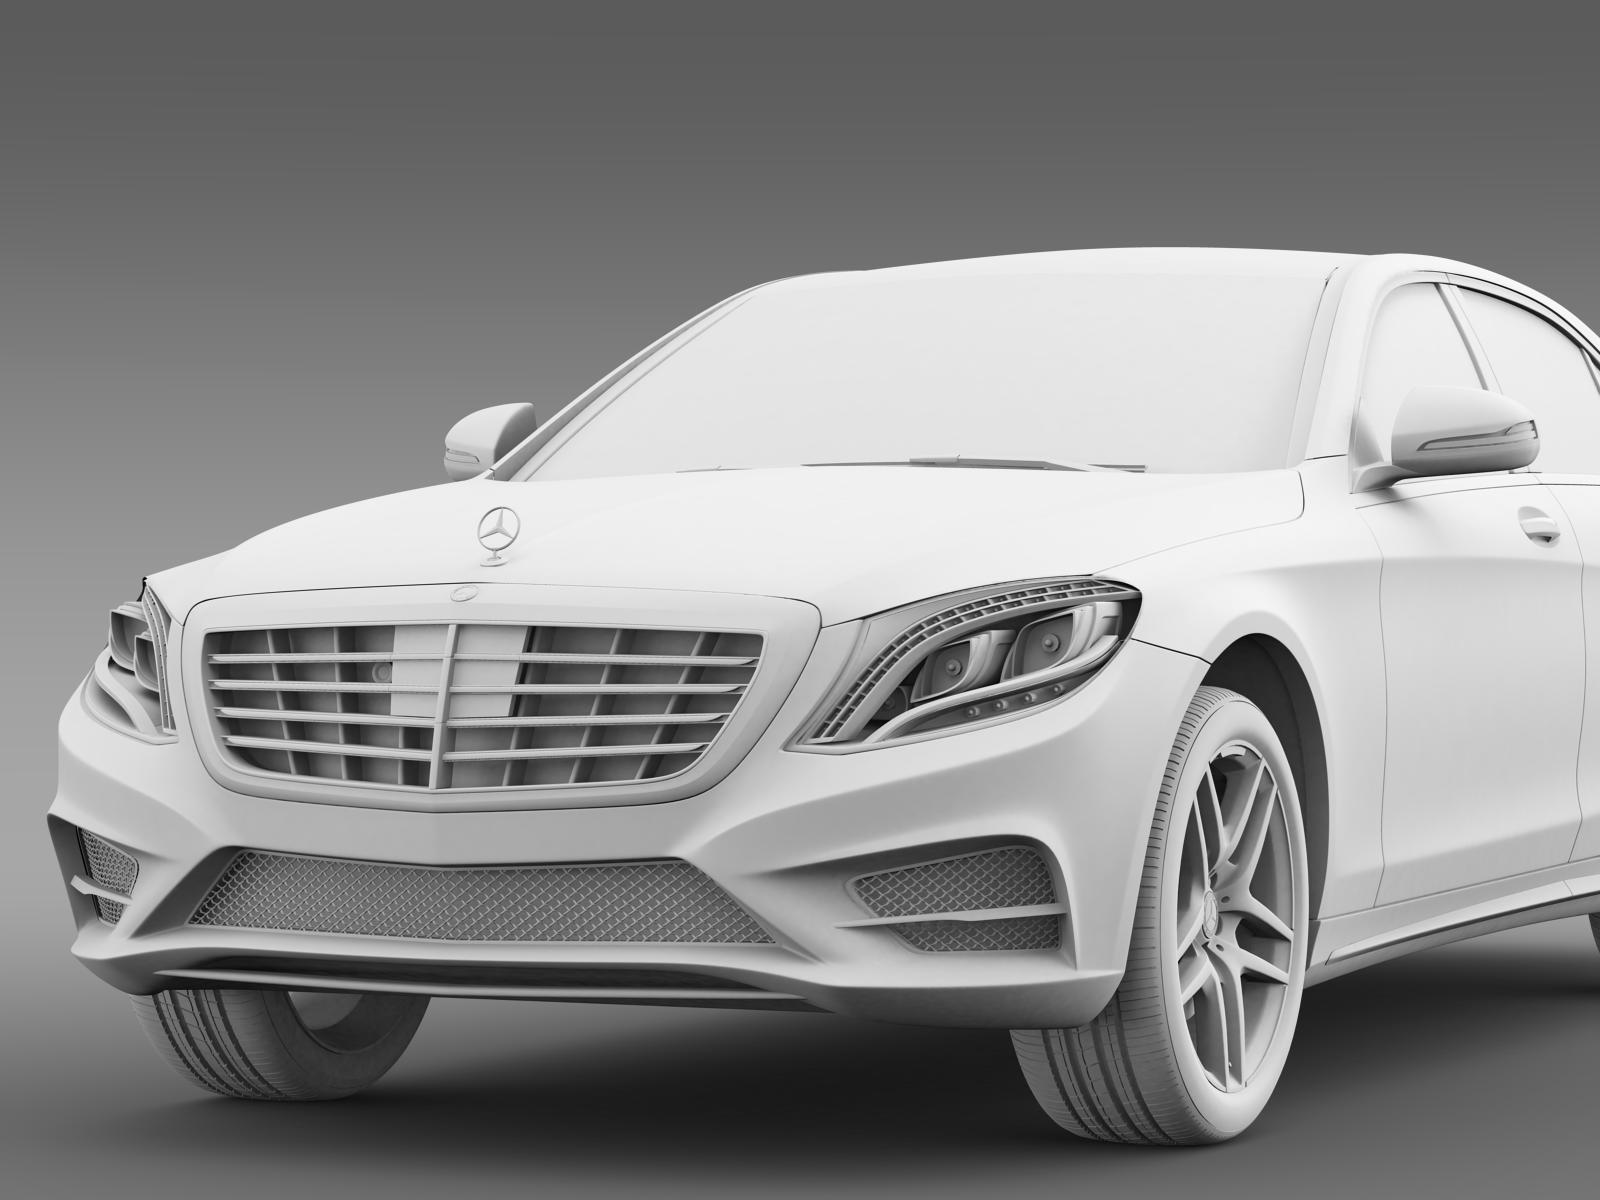 Amg mercedes benz s 500 w222 2013 by creator 3d 3docean for Mercedes benz creator